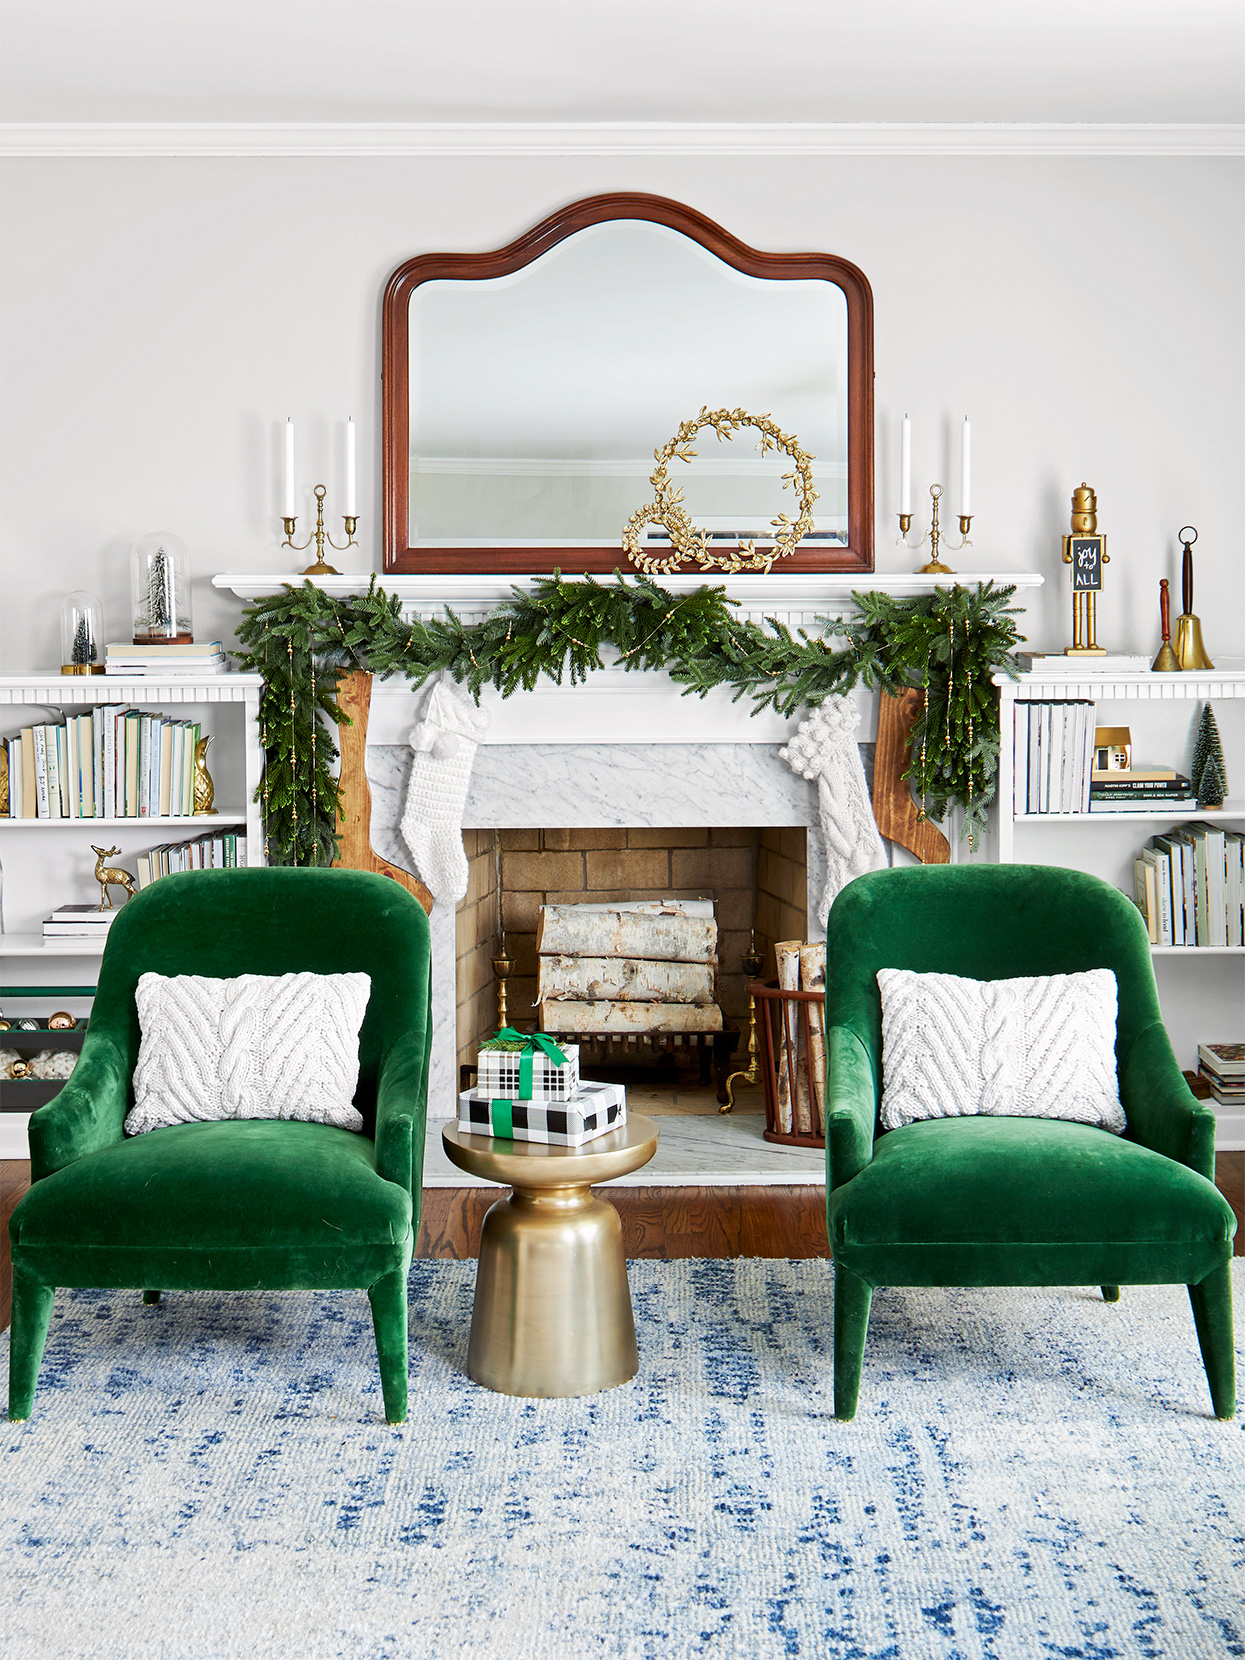 emerald green chairs near Christmas-decorated mantel